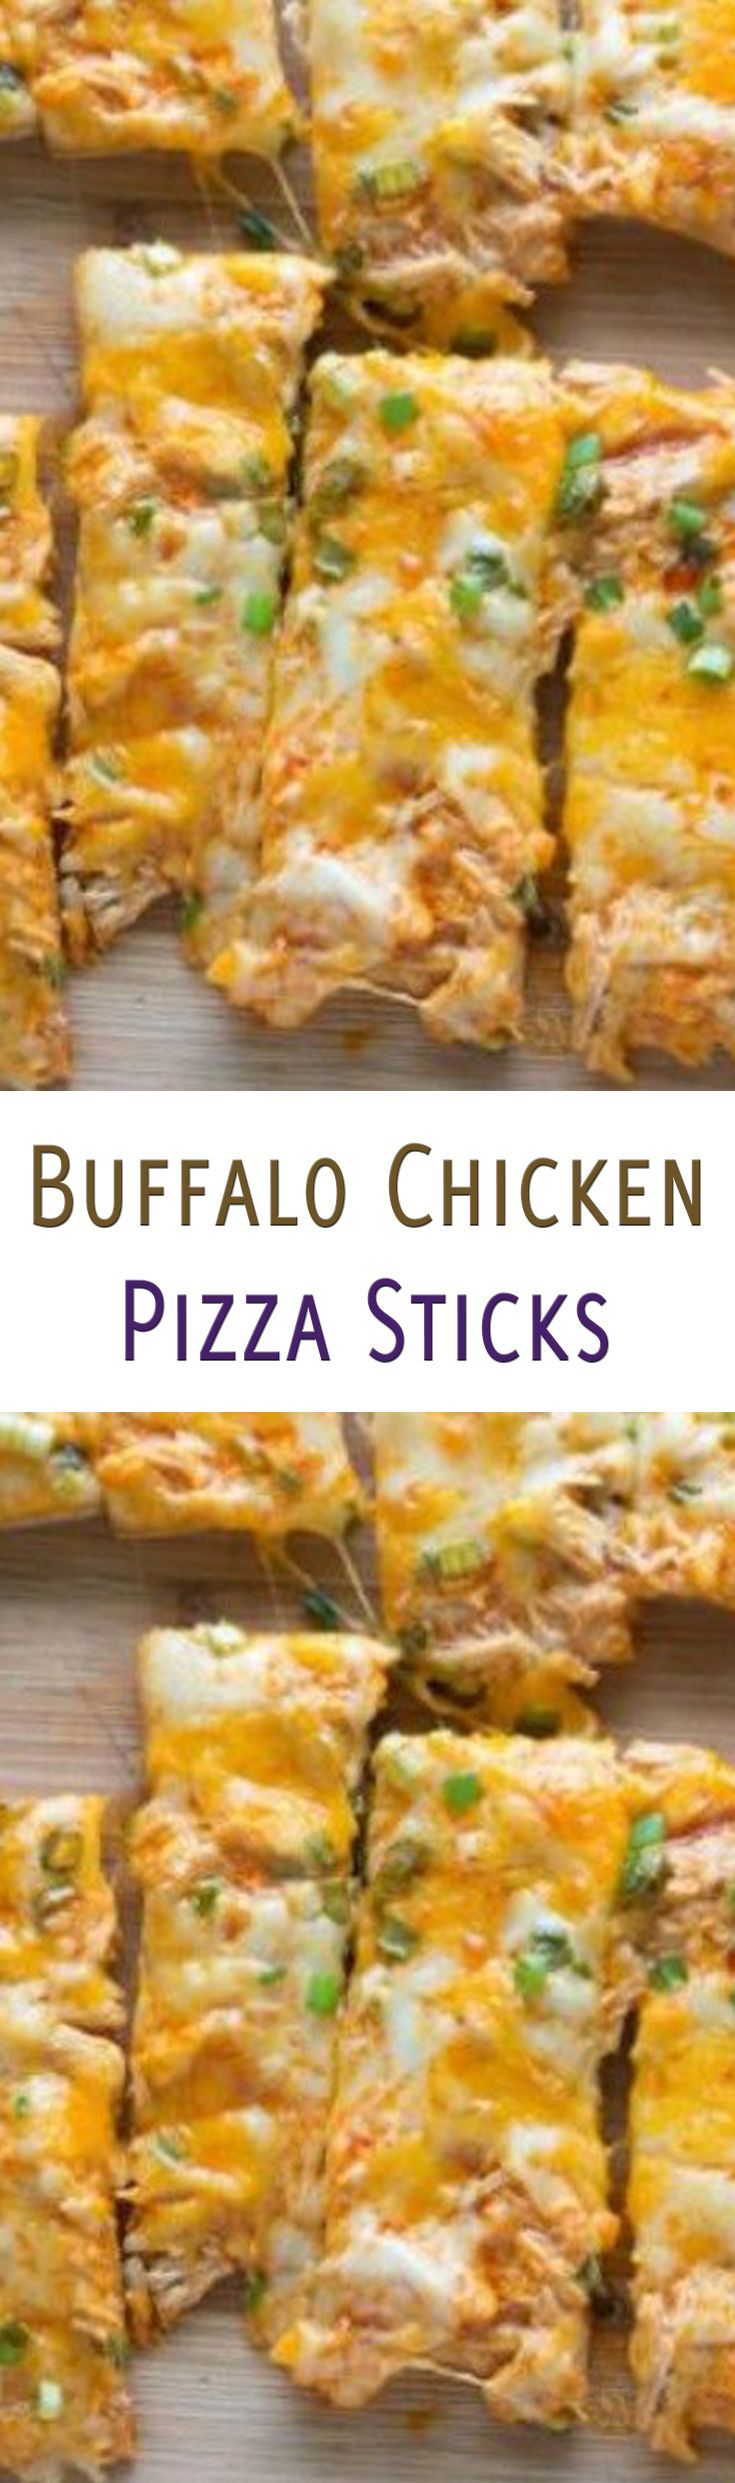 Buffalo Chicken Pizza Sticks Recipe. #CompleteRecipes.com #recipe #recipes #food #foodgasm #cleaneating #healthyfood #healthy #healthyrecipes